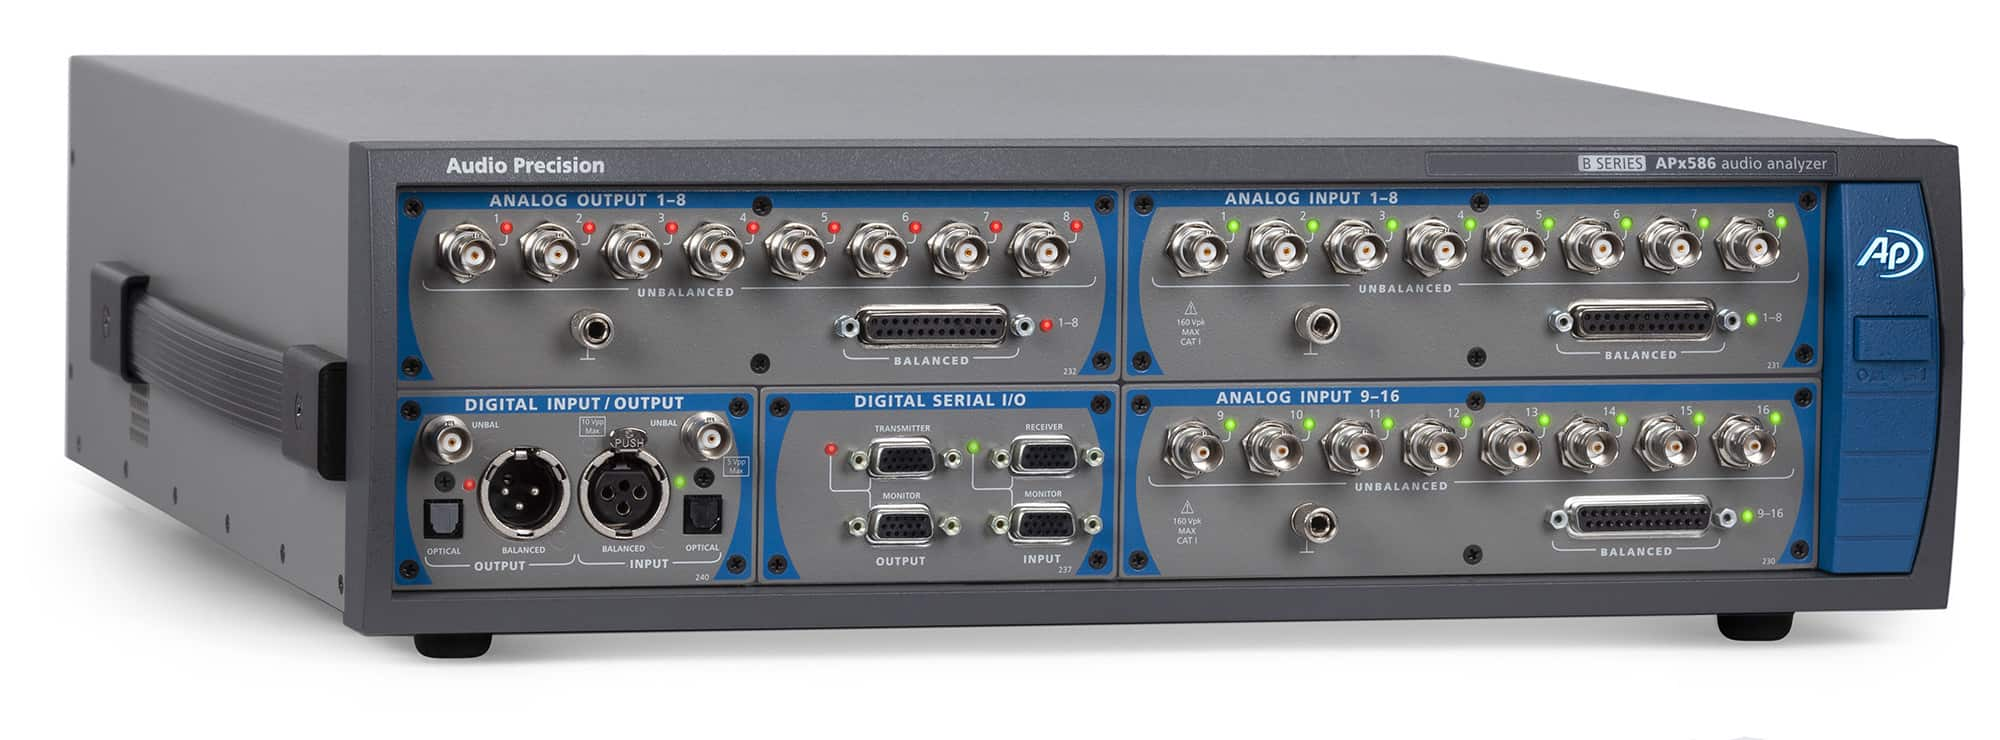 APx586 B Series Audio Analyzer with optional Digital Serial Module